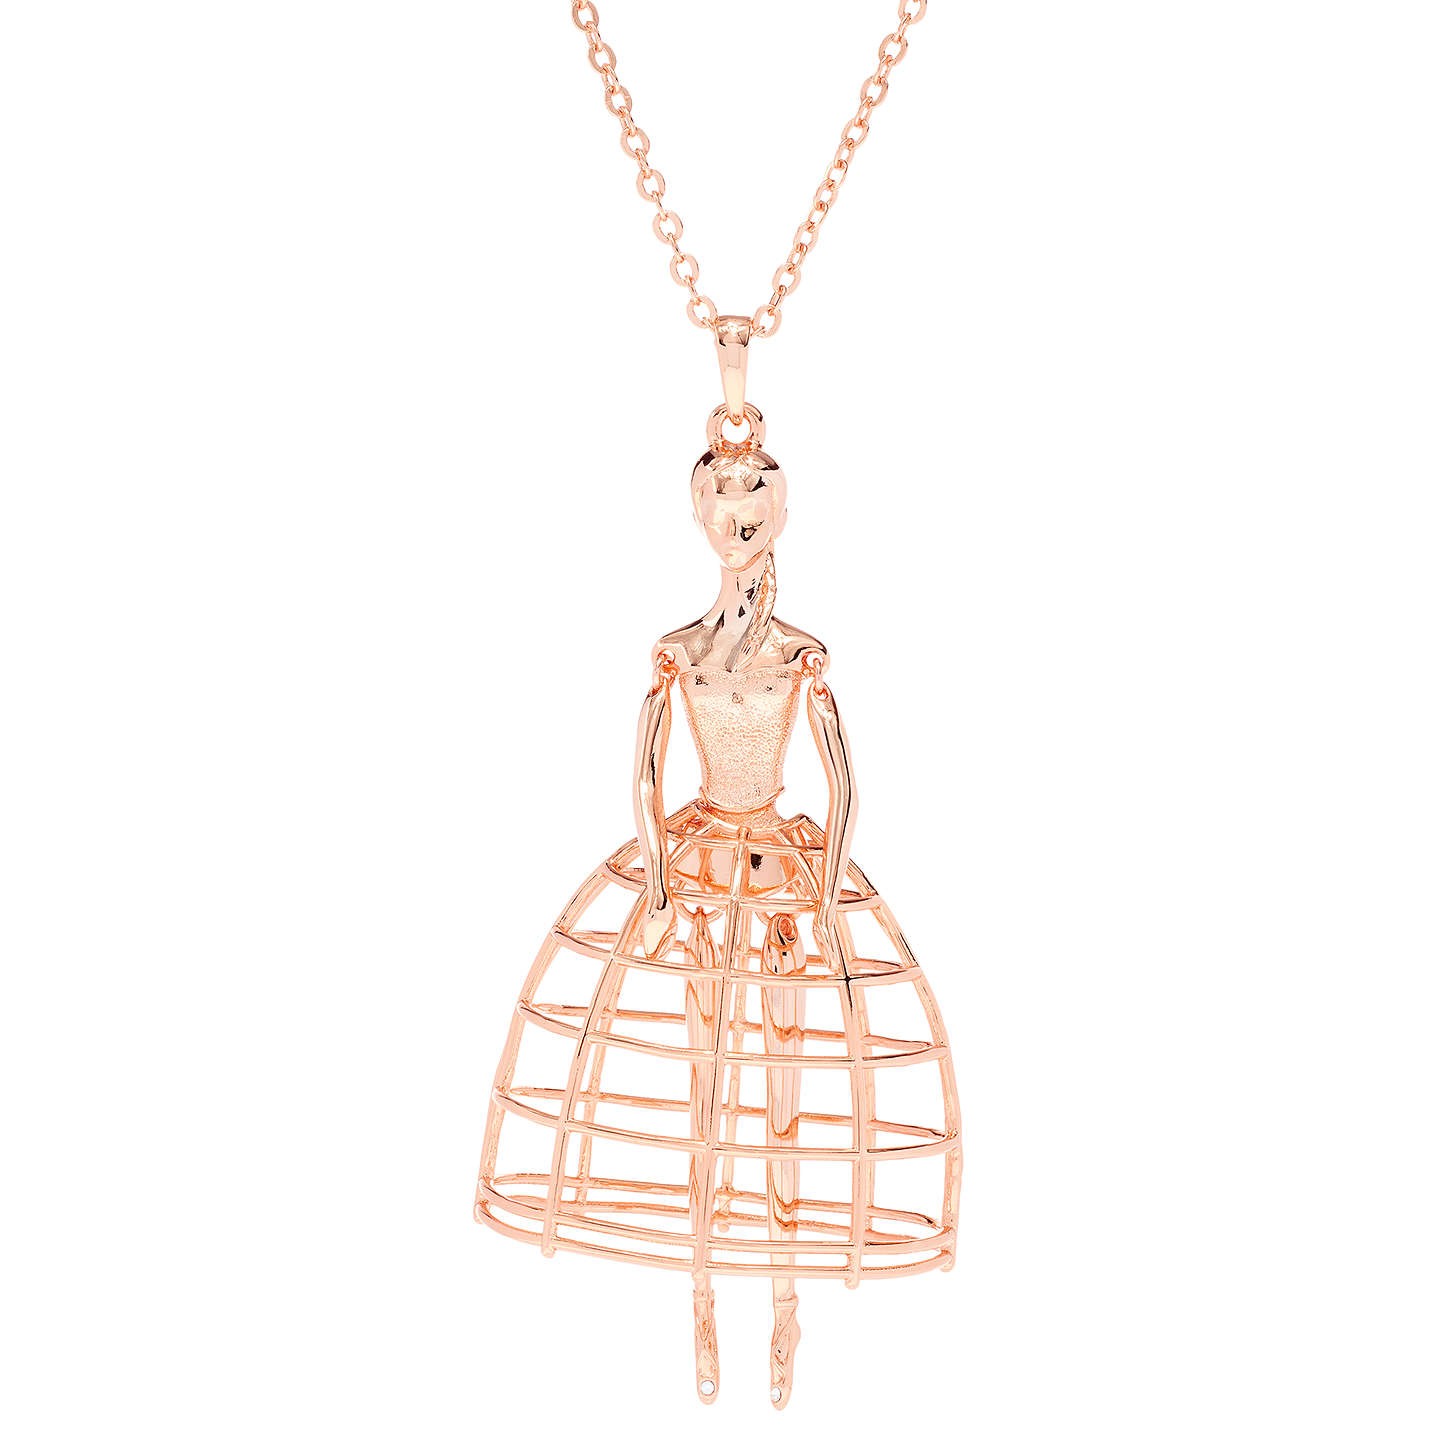 BuyTed Baker Peige Swarovski Crystal Ballerina Pendant Necklace, Rose Gold  Online At Johnlewis.com ...